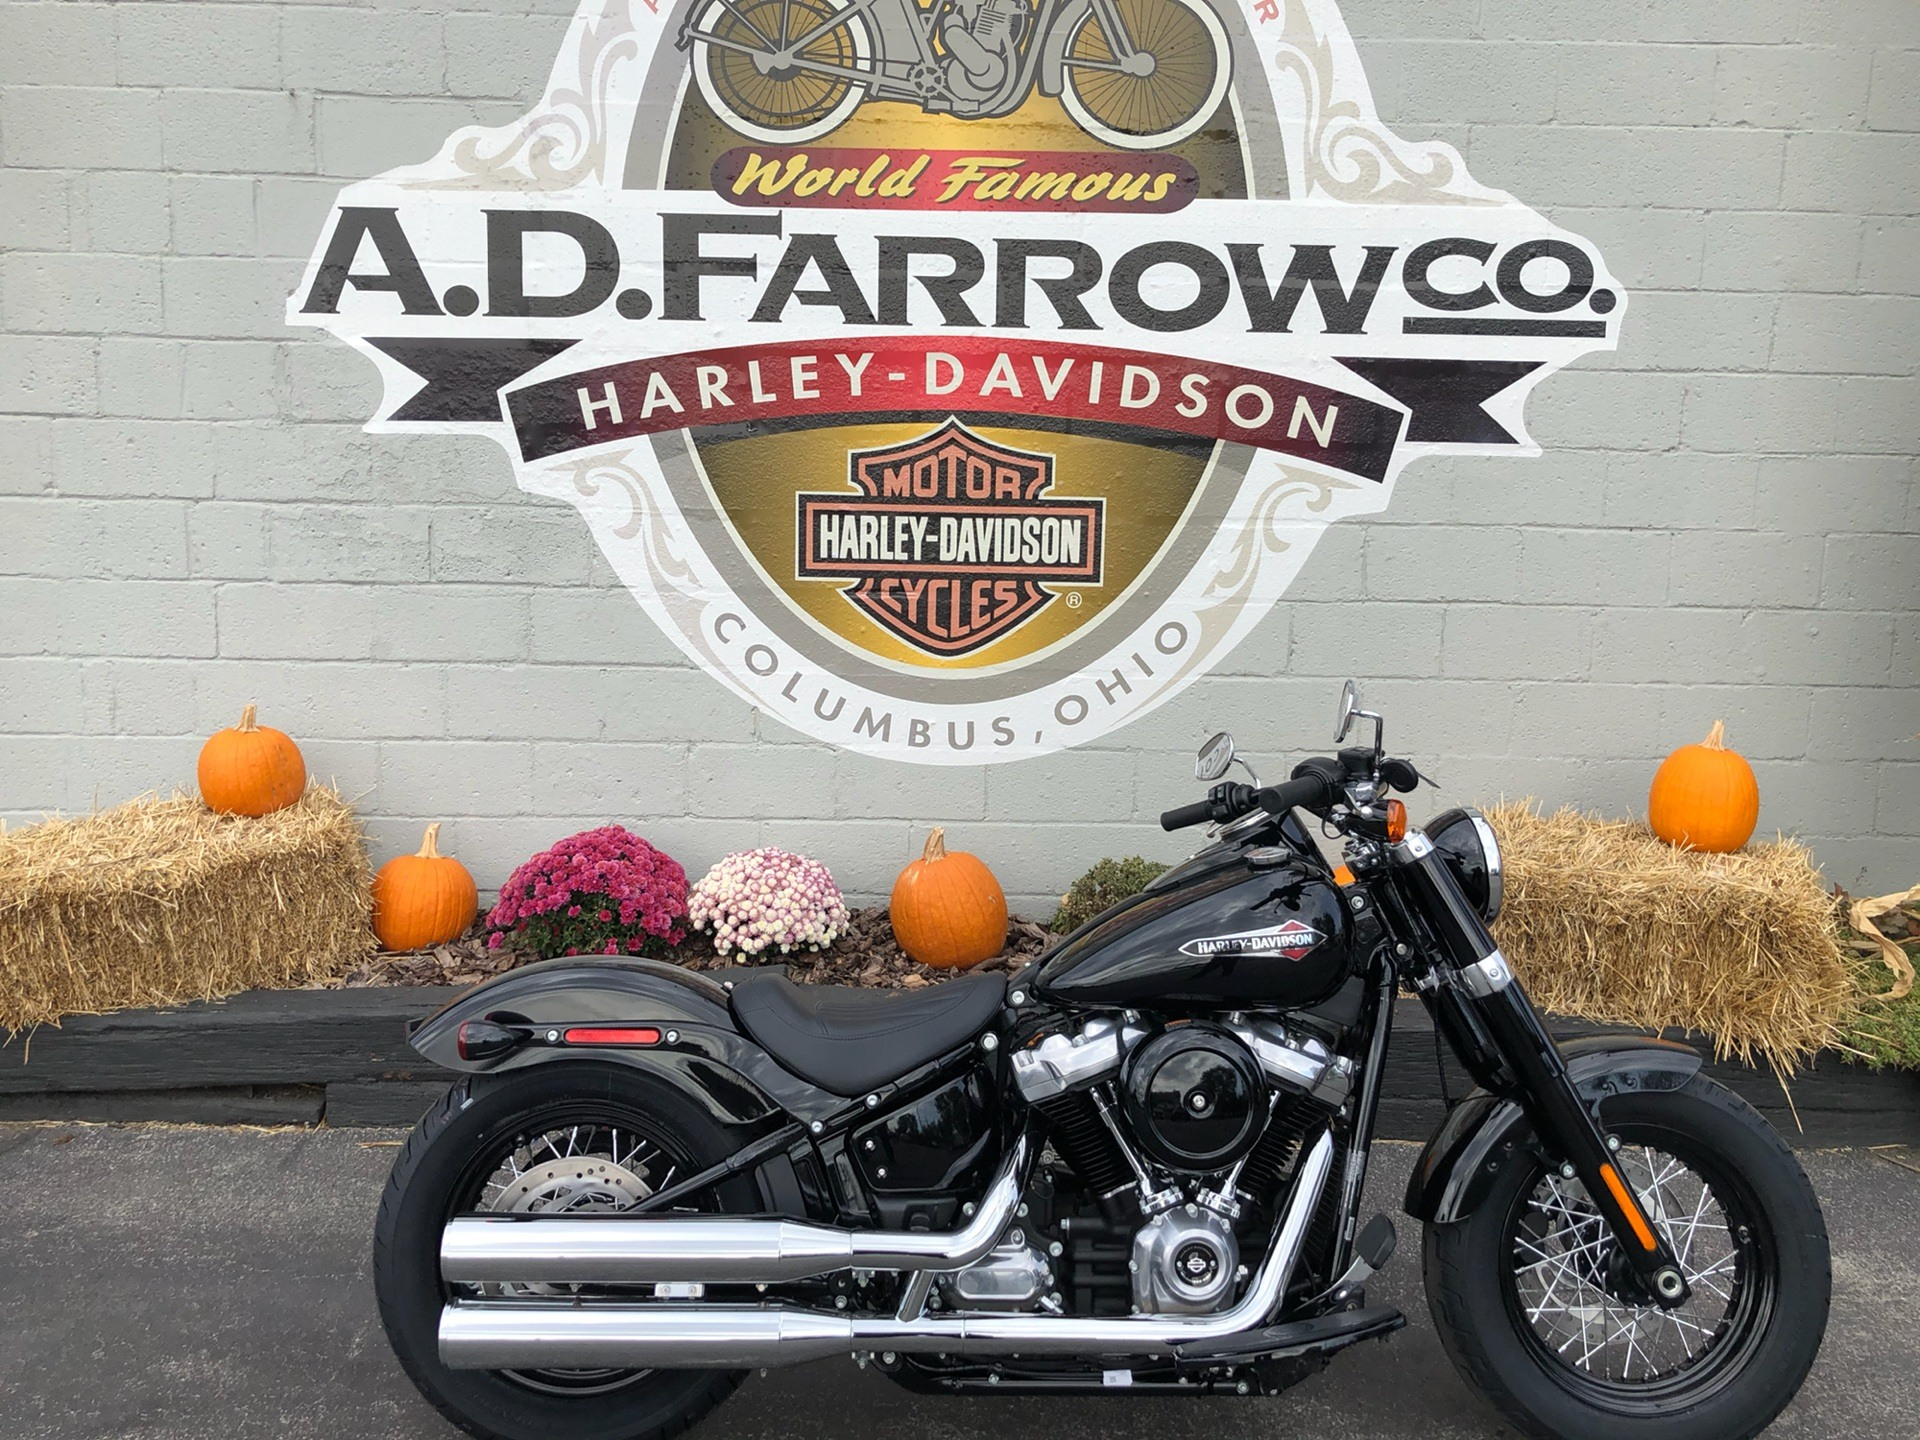 2020 Harley-Davidson FLSL in Sunbury, Ohio - Photo 1